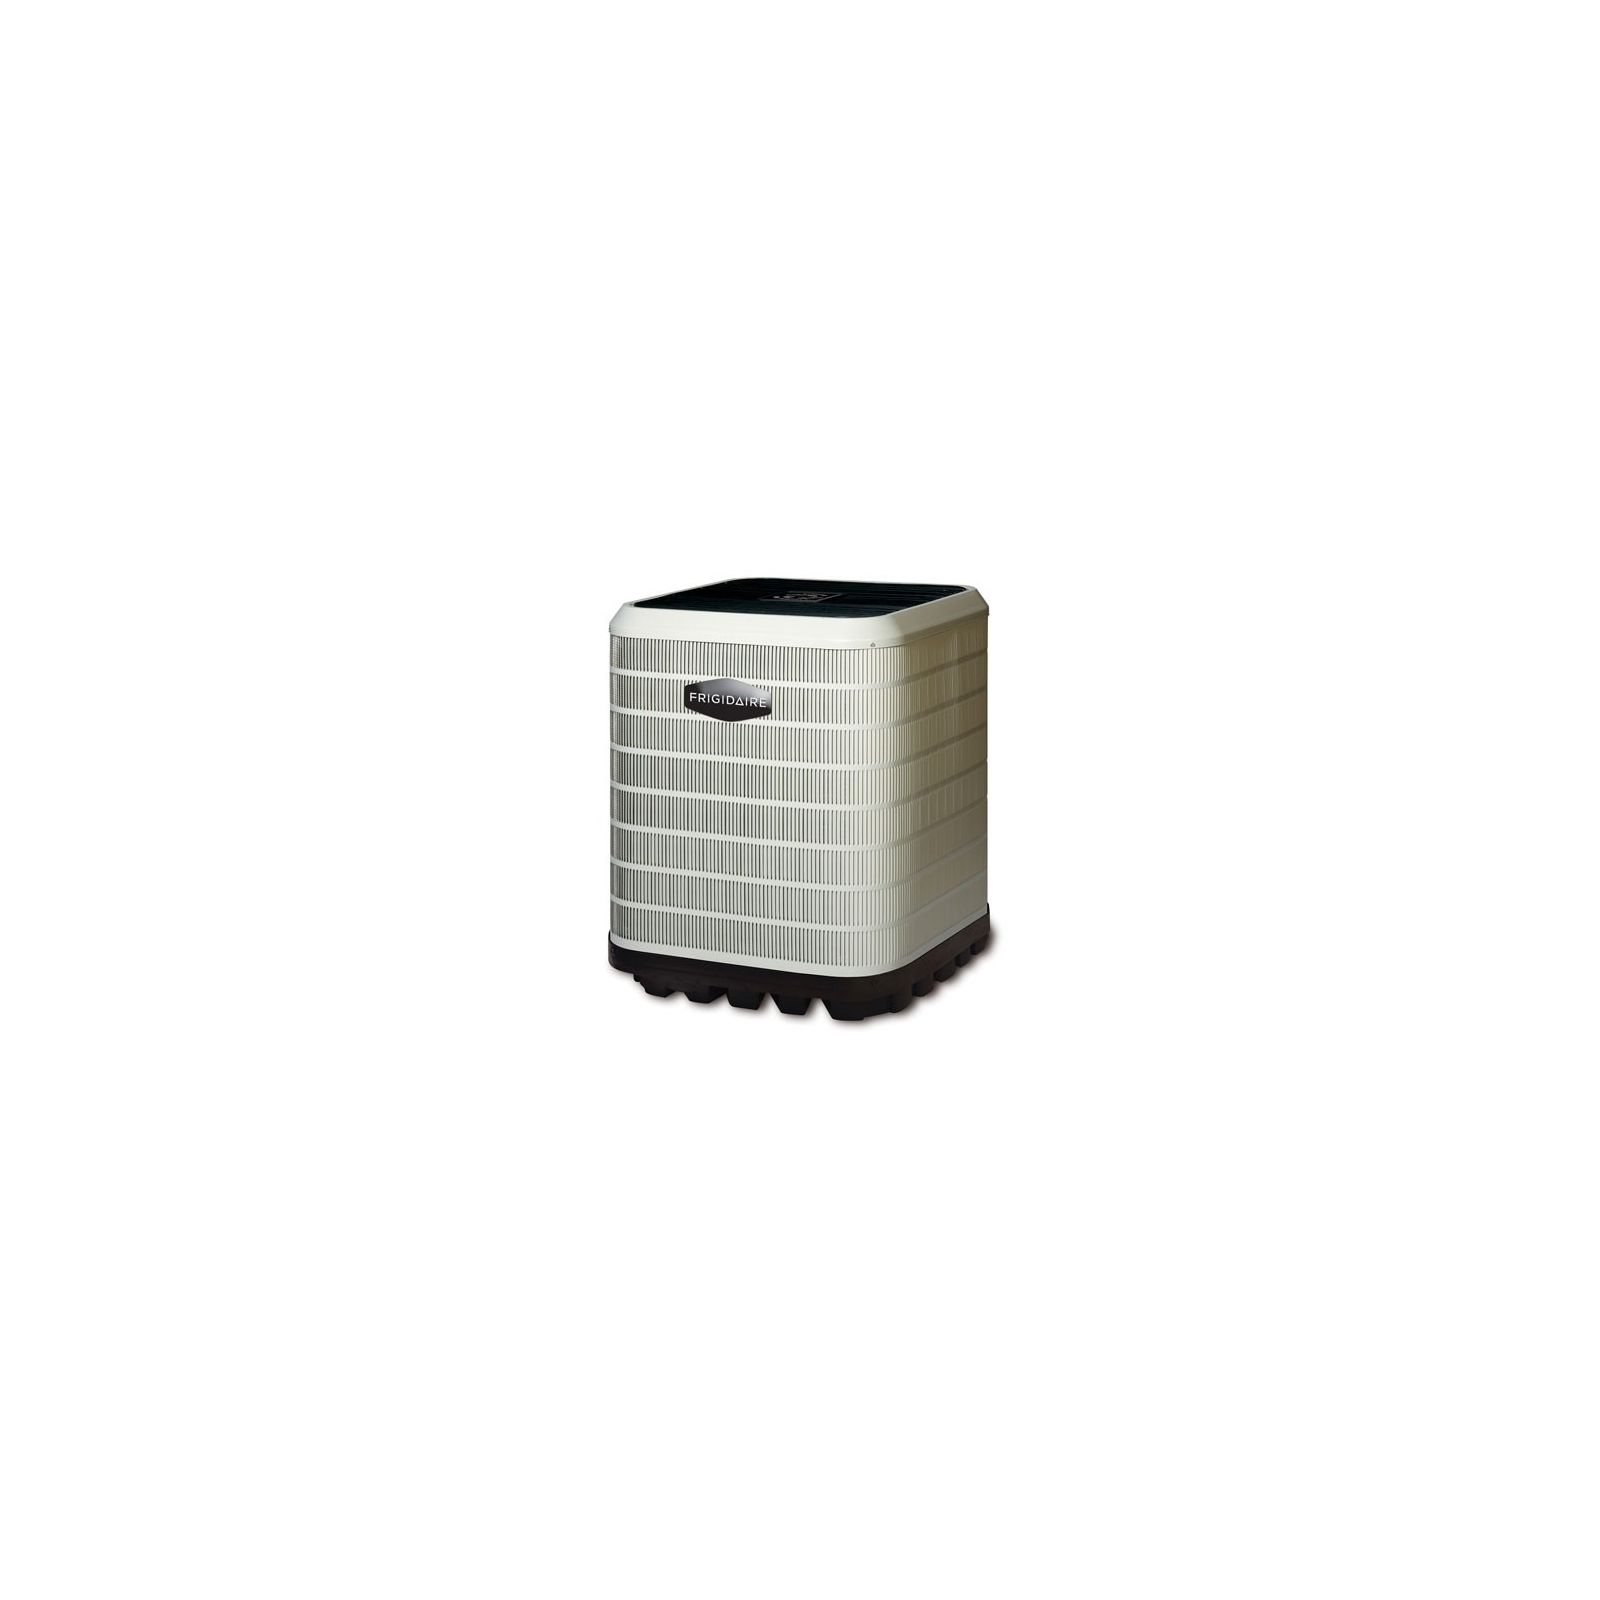 Frigidaire 919670F - FT4BF-060KA - 5 Ton 16 SEER Ultra High Efficiency Heat Pump, R410A